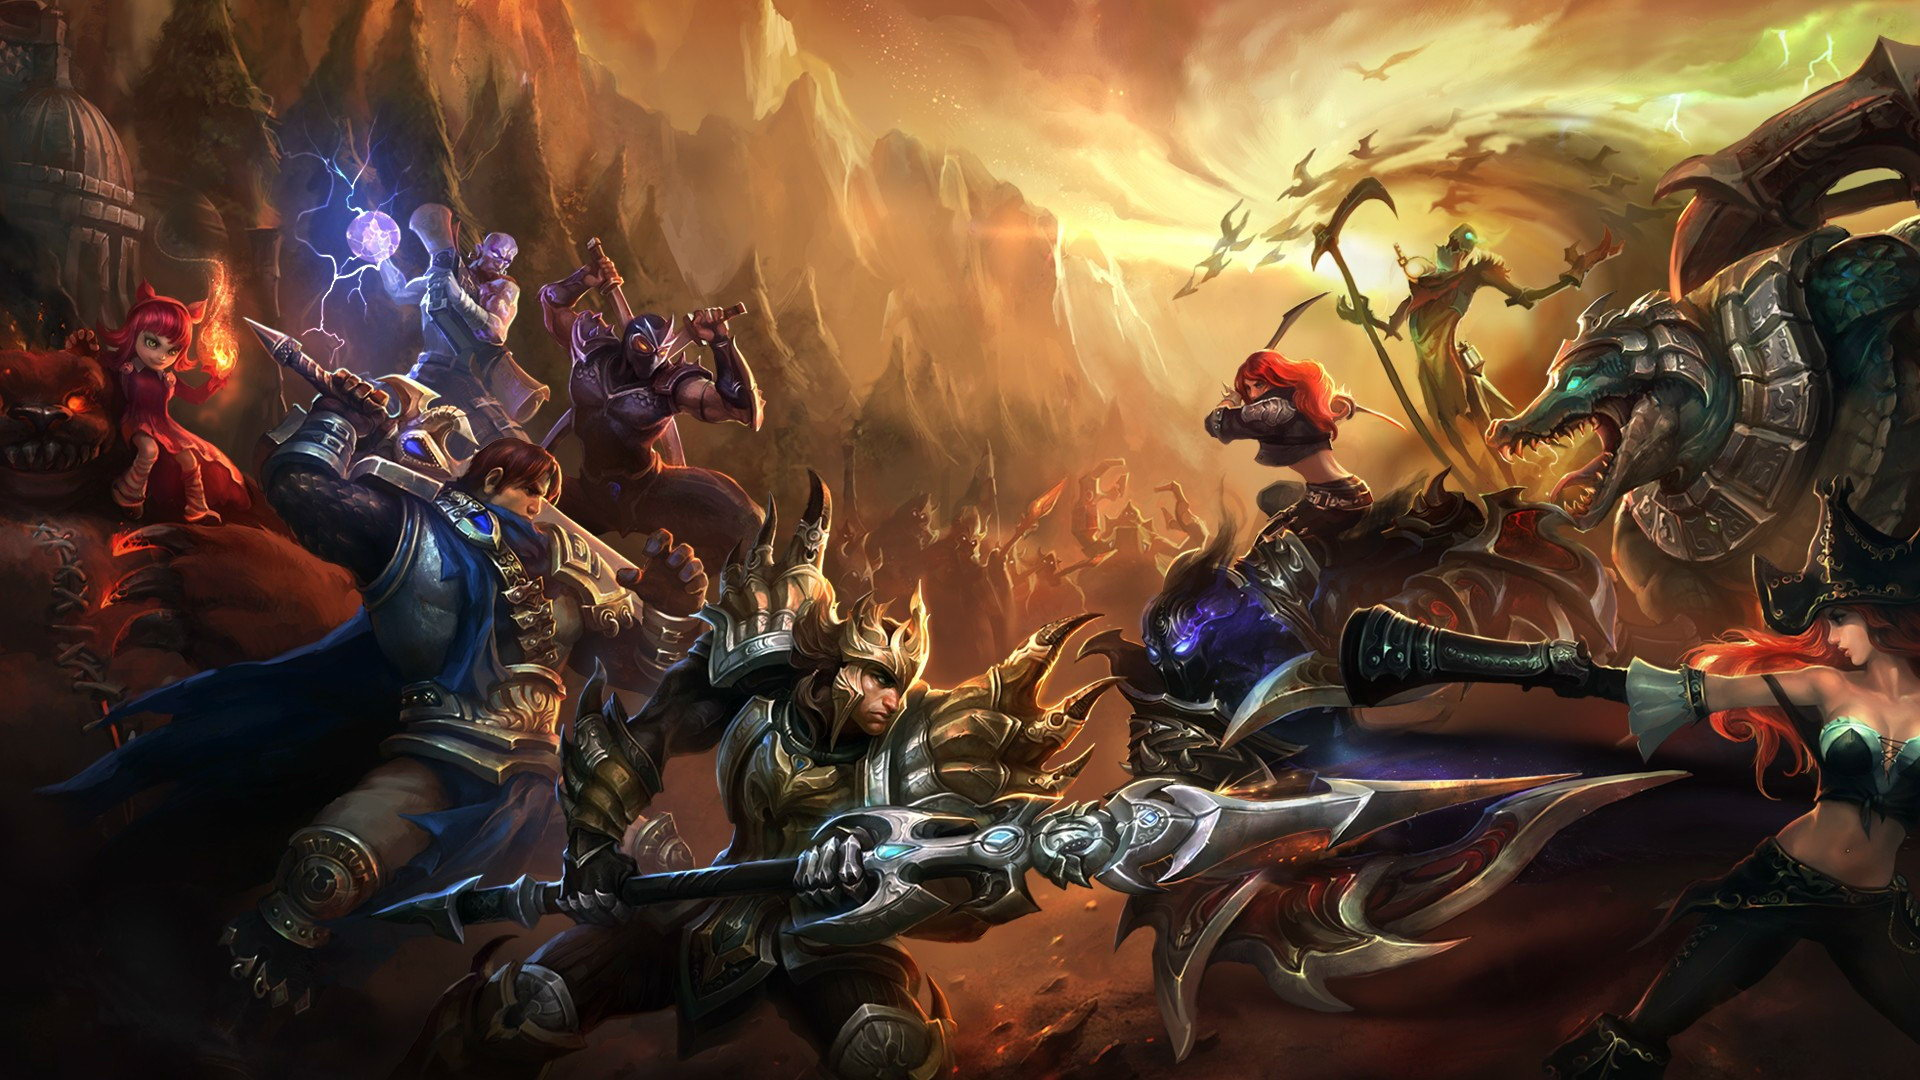 How League of Legends Is Changing In More Than Just Appearance